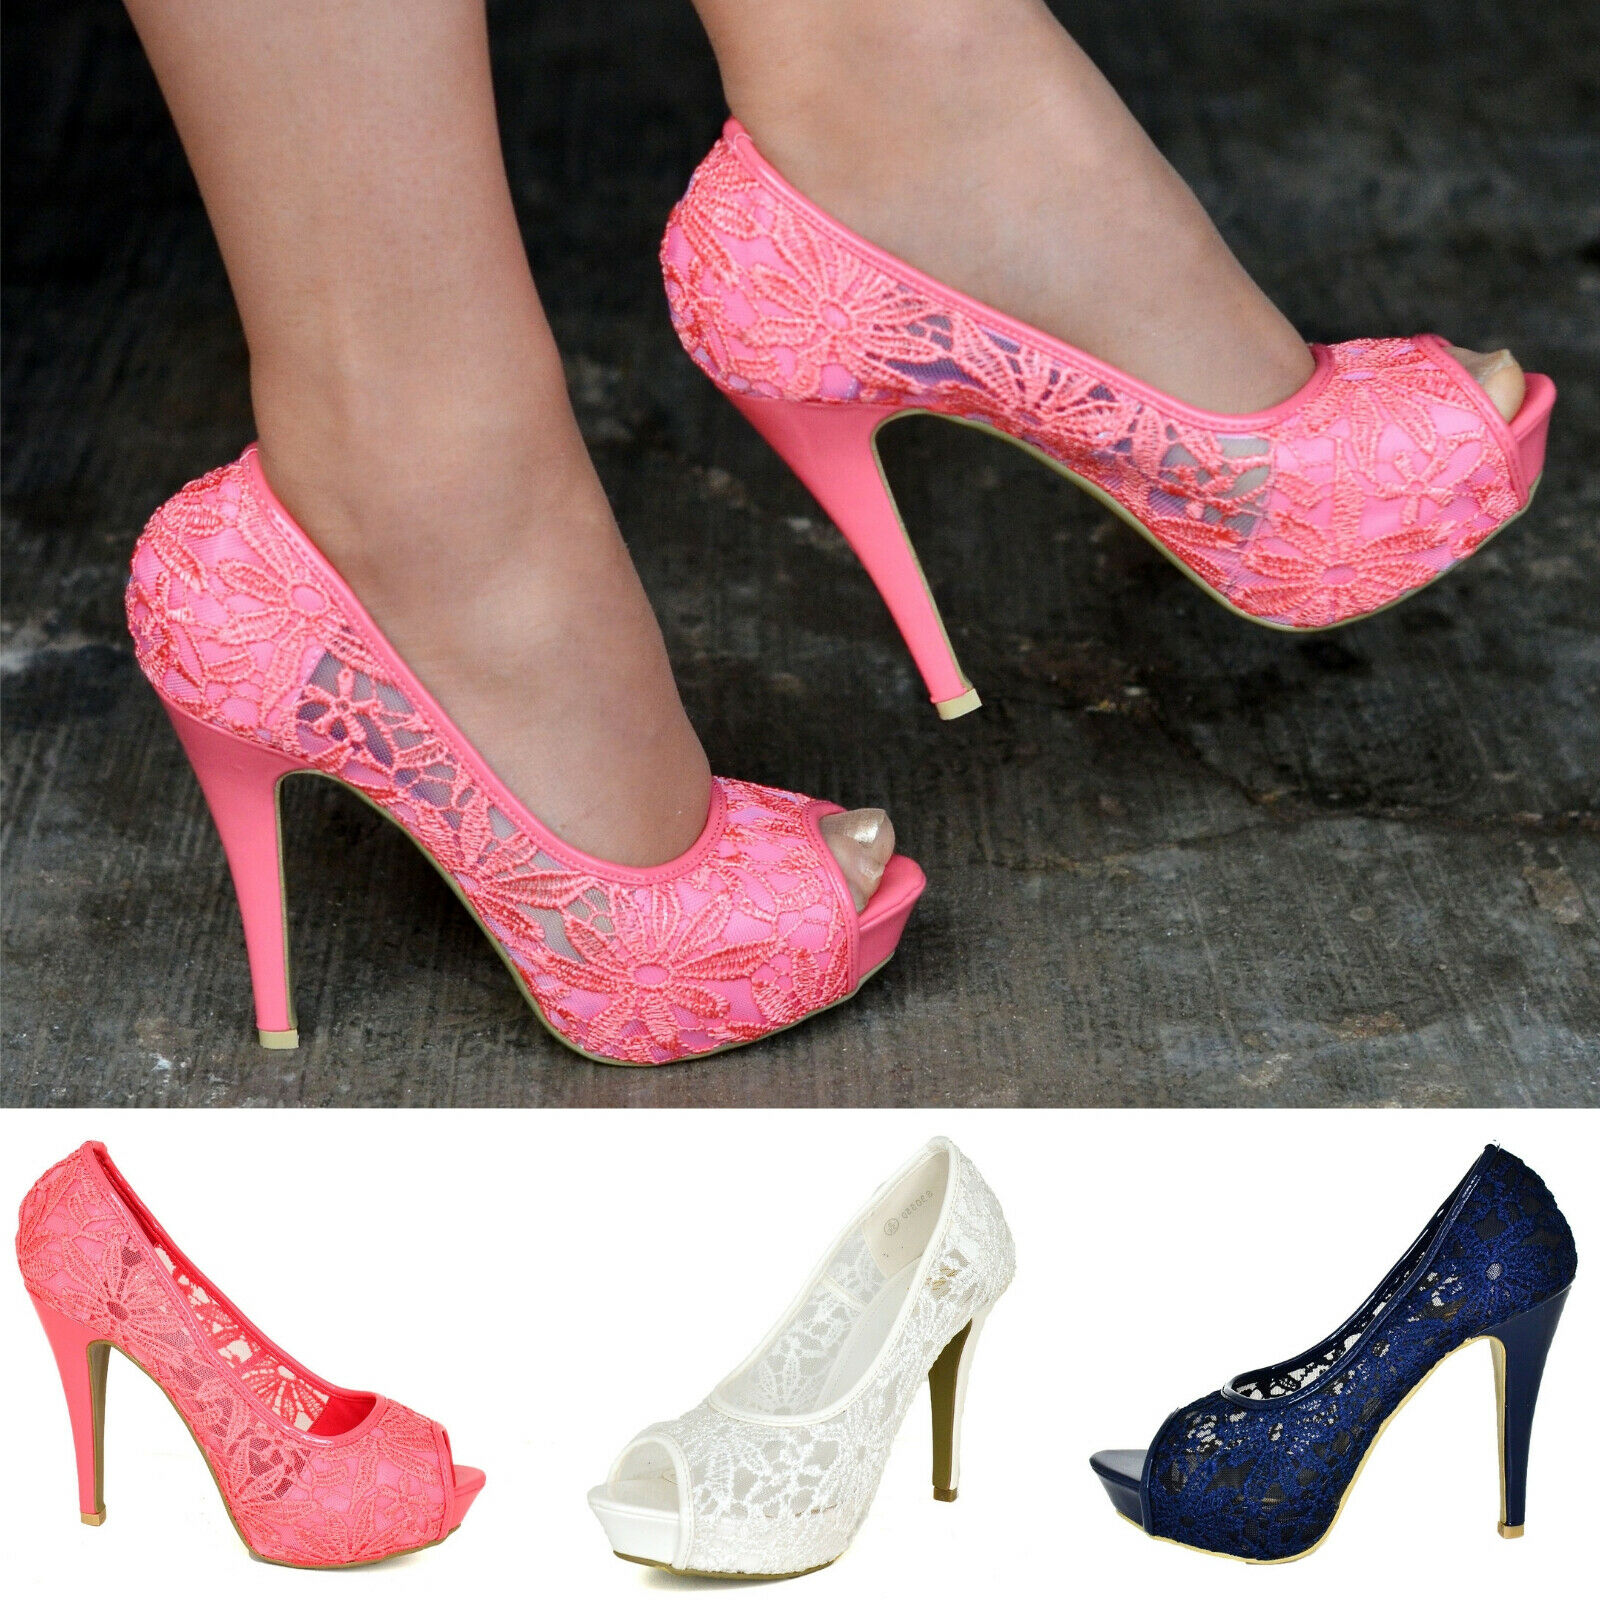 Ladies Lace Platform Pumps High Heels Peep Toe Summer Party Shoes Wedding Size